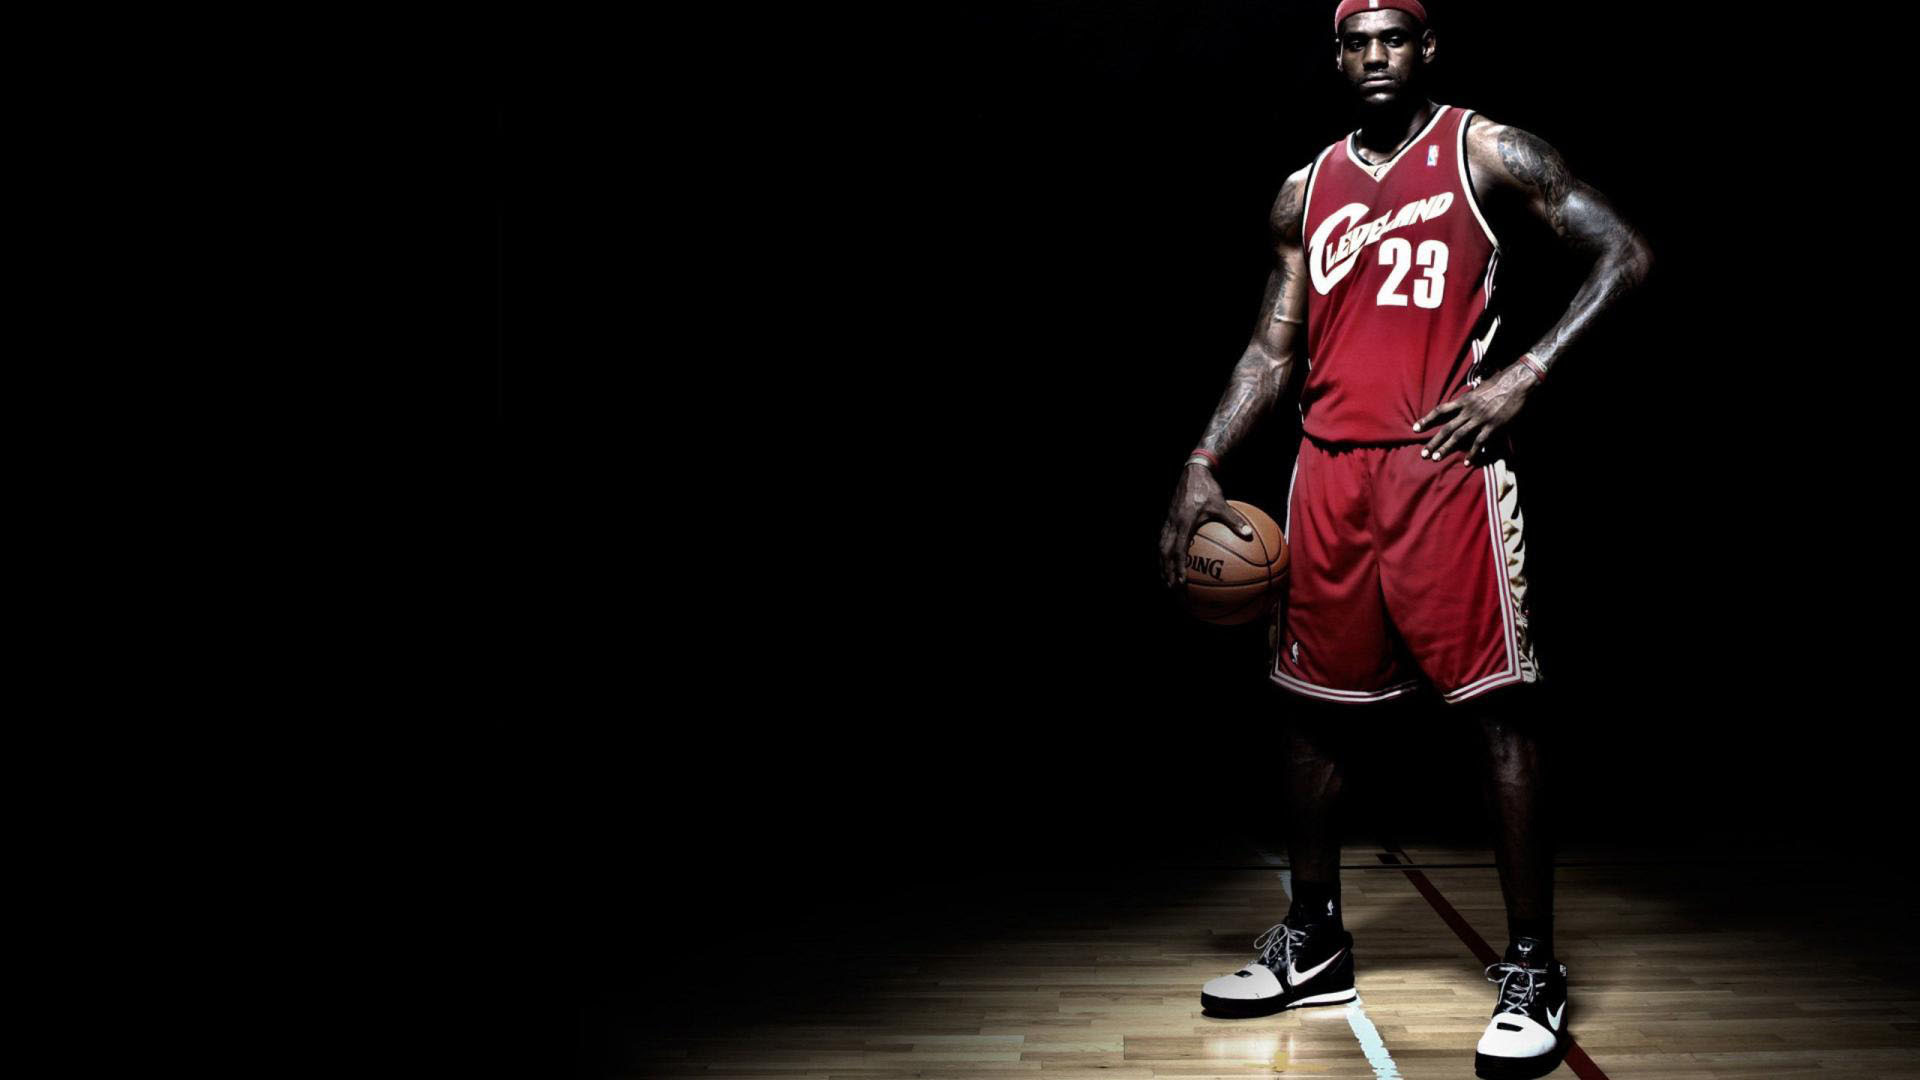 Lebron James Wallpapers Miami Heat Wallpaper 1920x1080